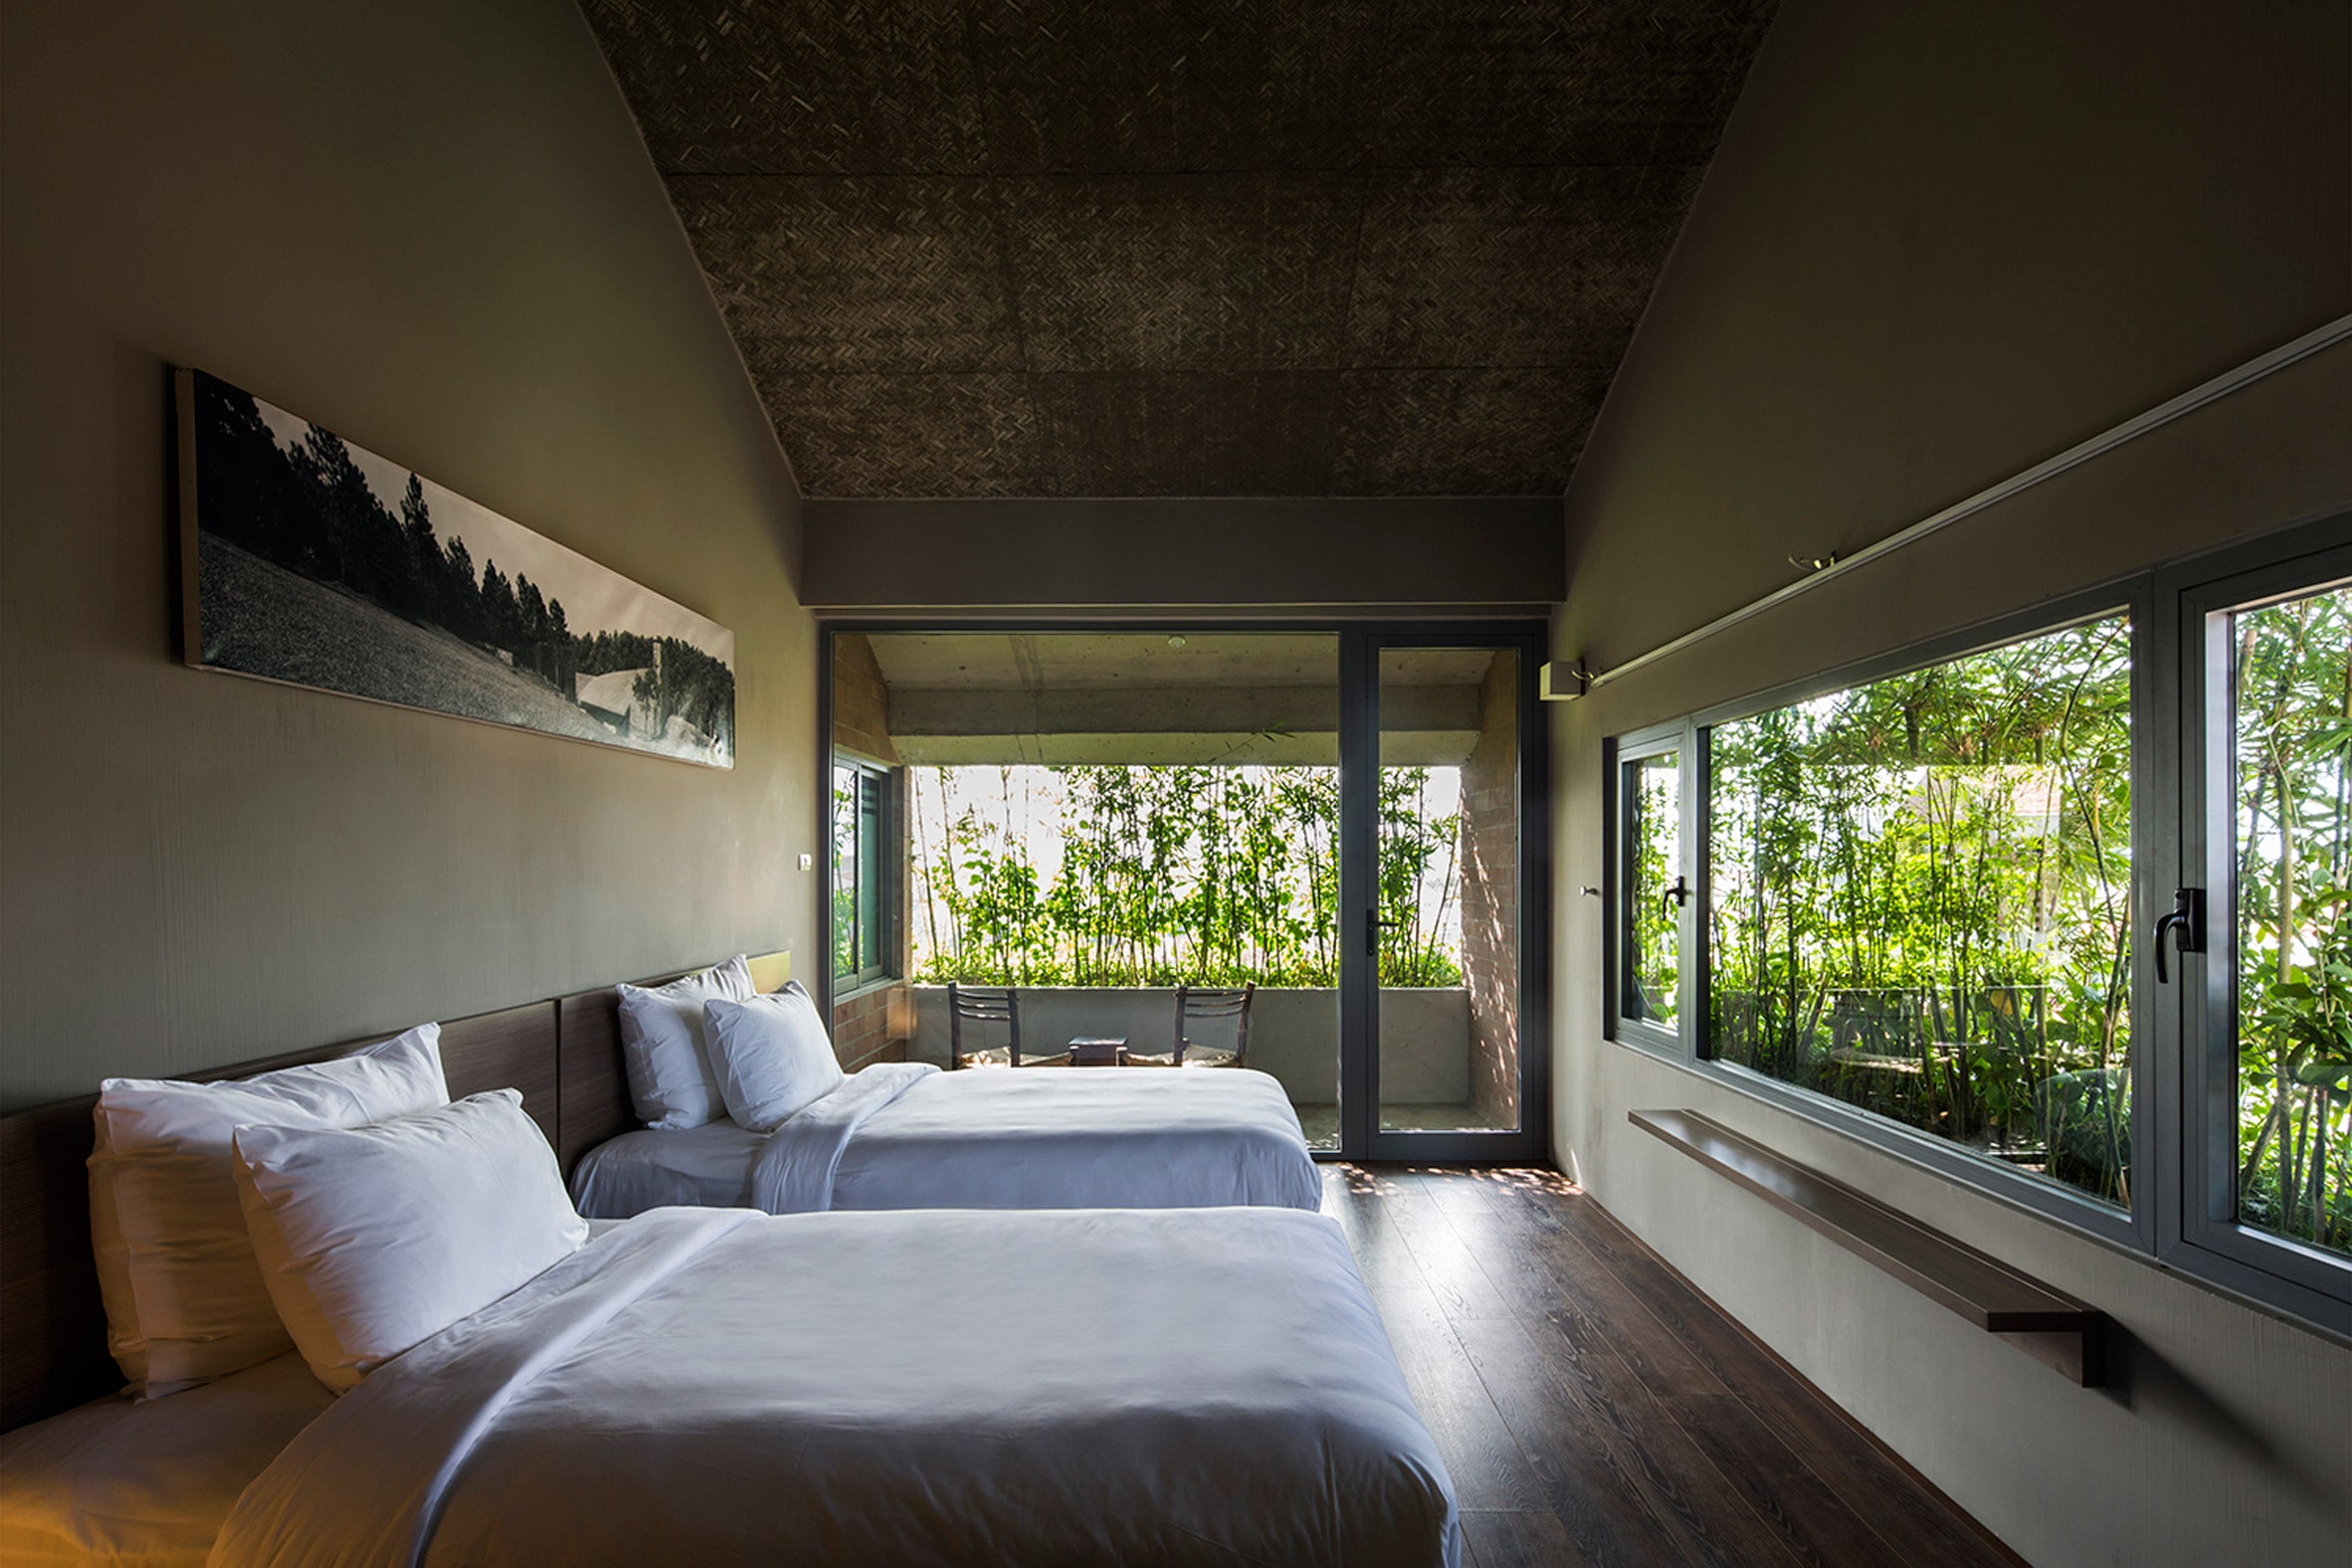 Hoi An Hotel by Vo Trong Nghia Architects (Image Credit)